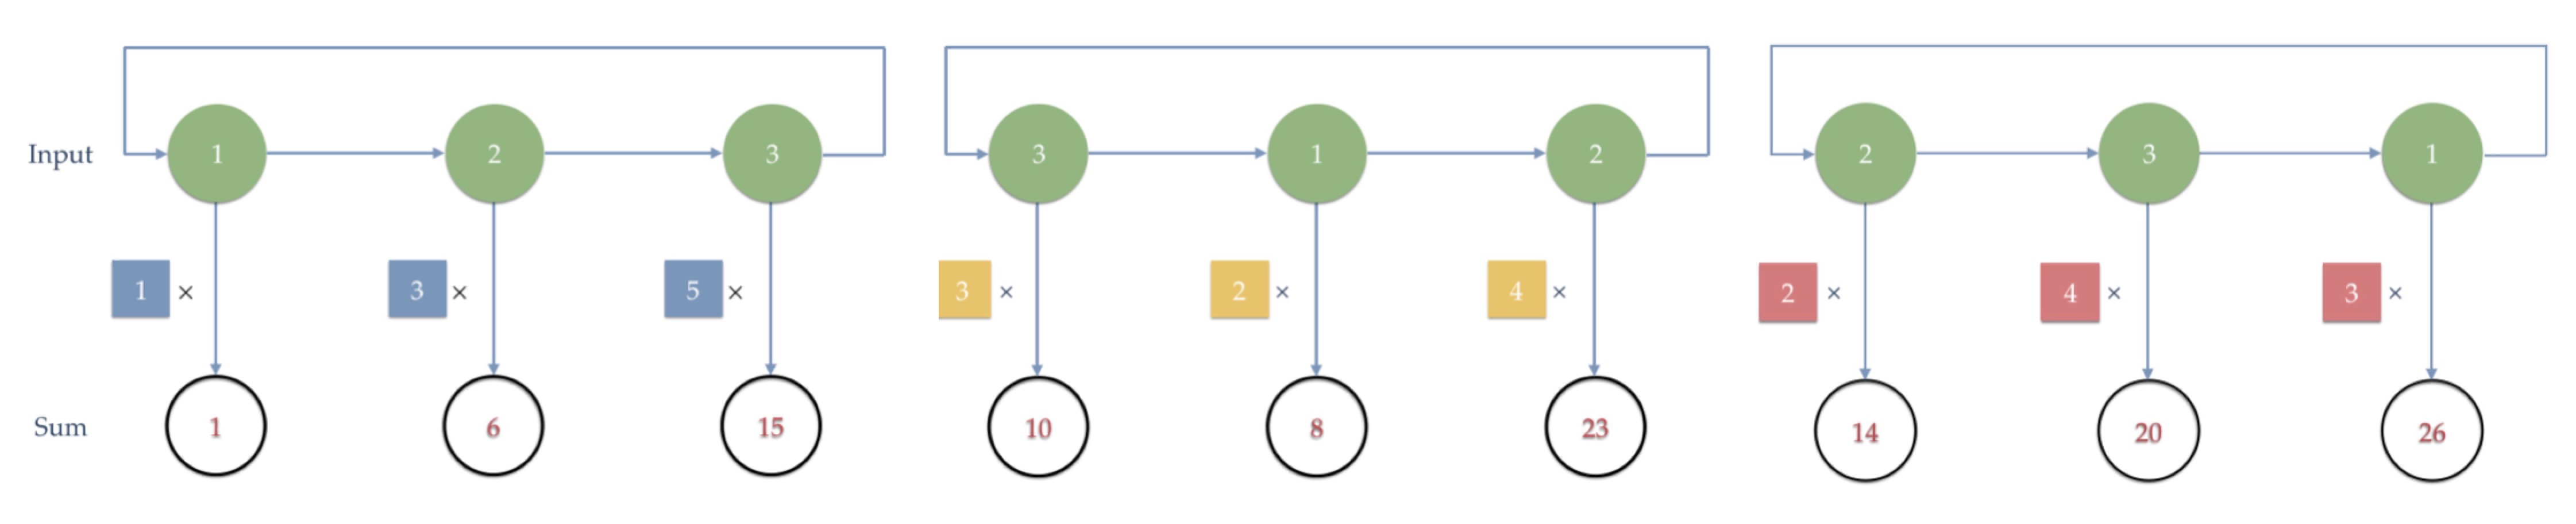 Bitwise Neural Networks on FPGA: High-Speed and Low-Power